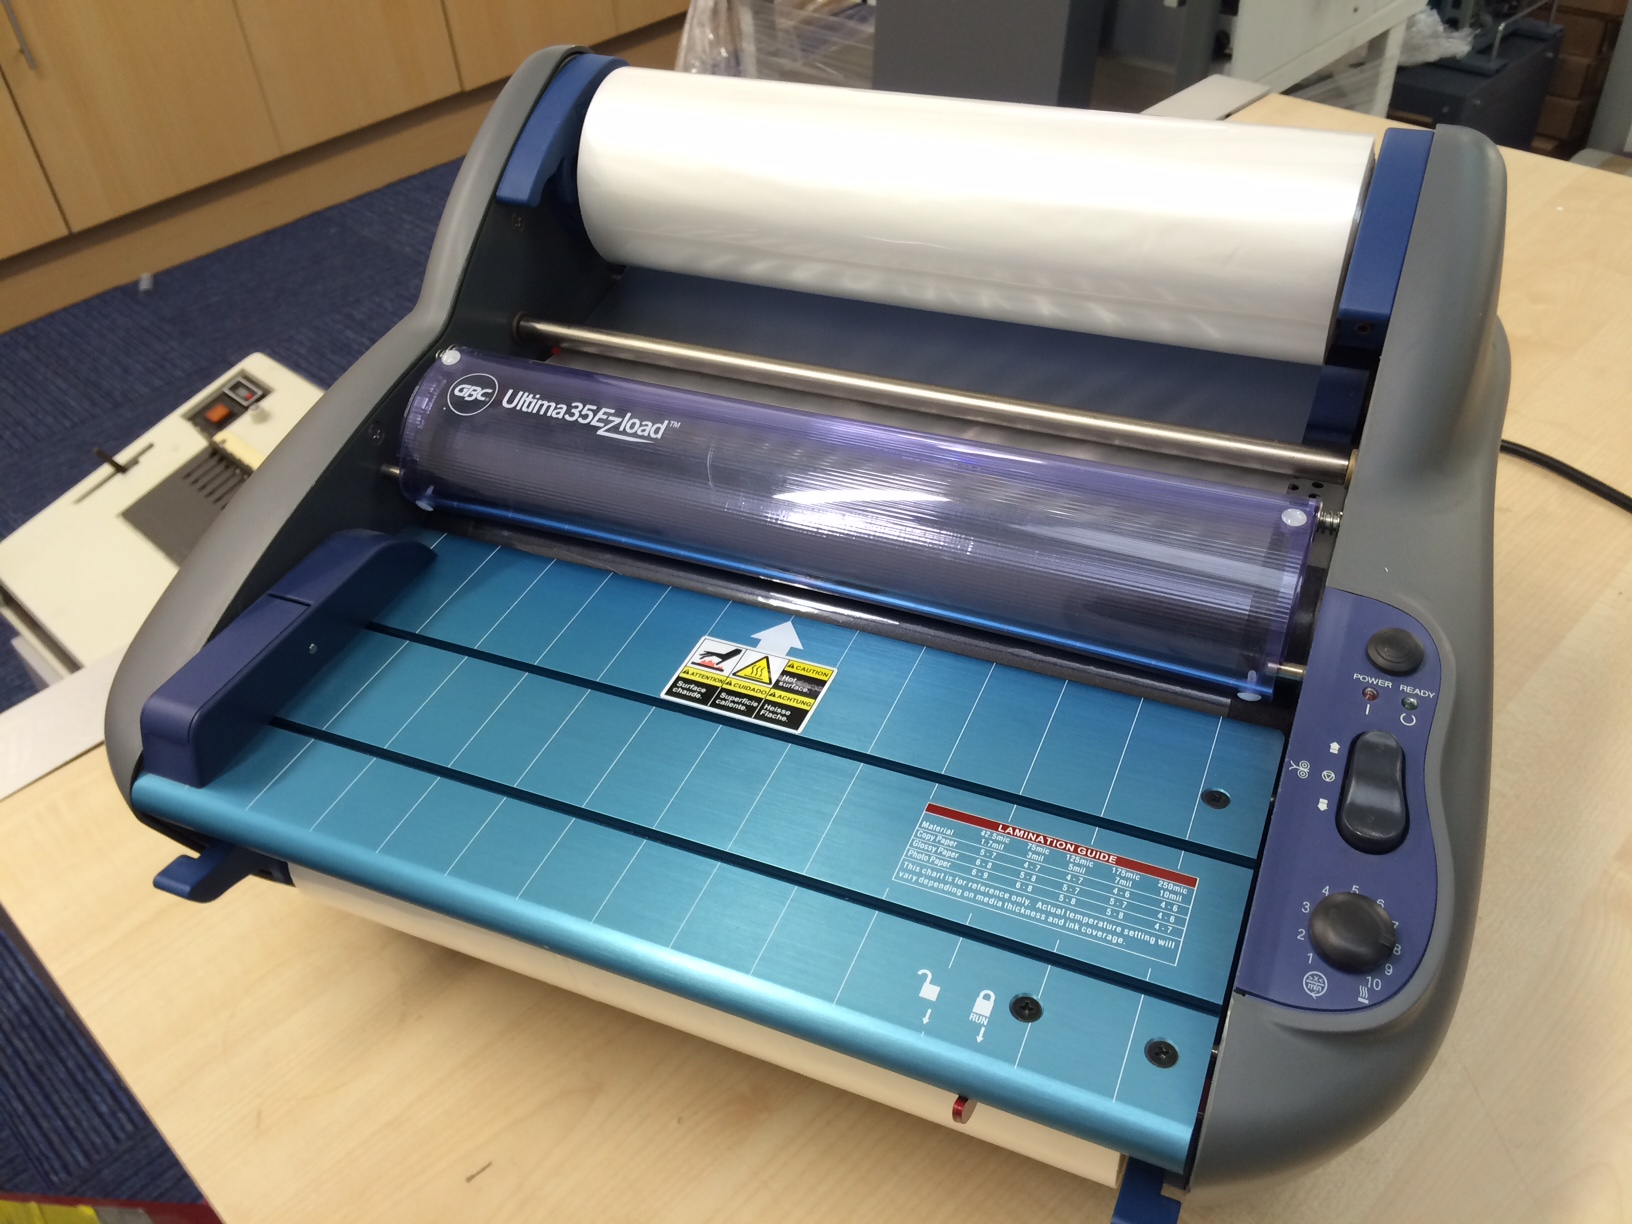 GBC Ultima 35 Ezload A3 Roll Laminator